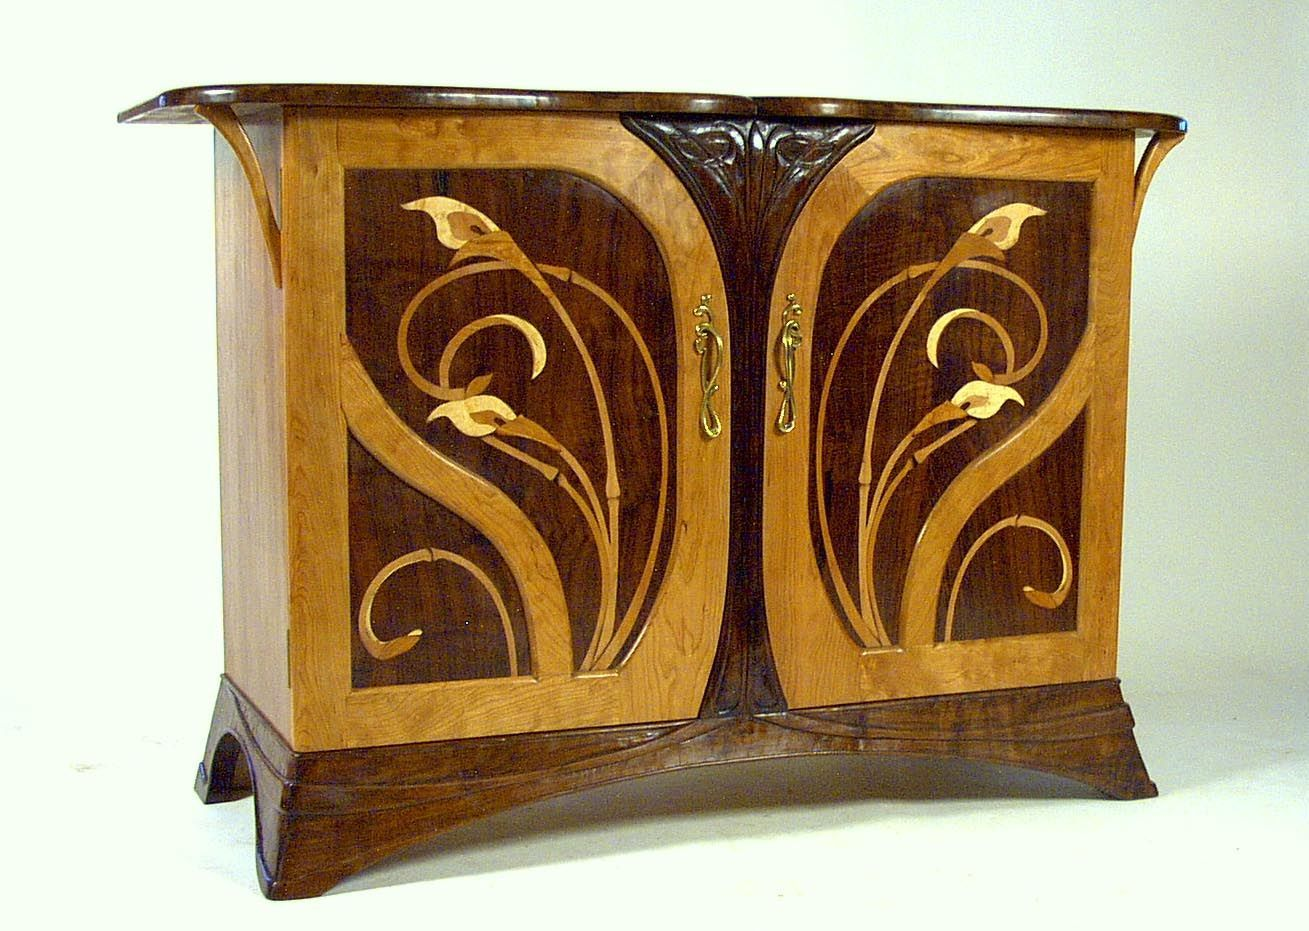 art nouveau furniture - Google Search | Dream Esthetic | Pinterest ...